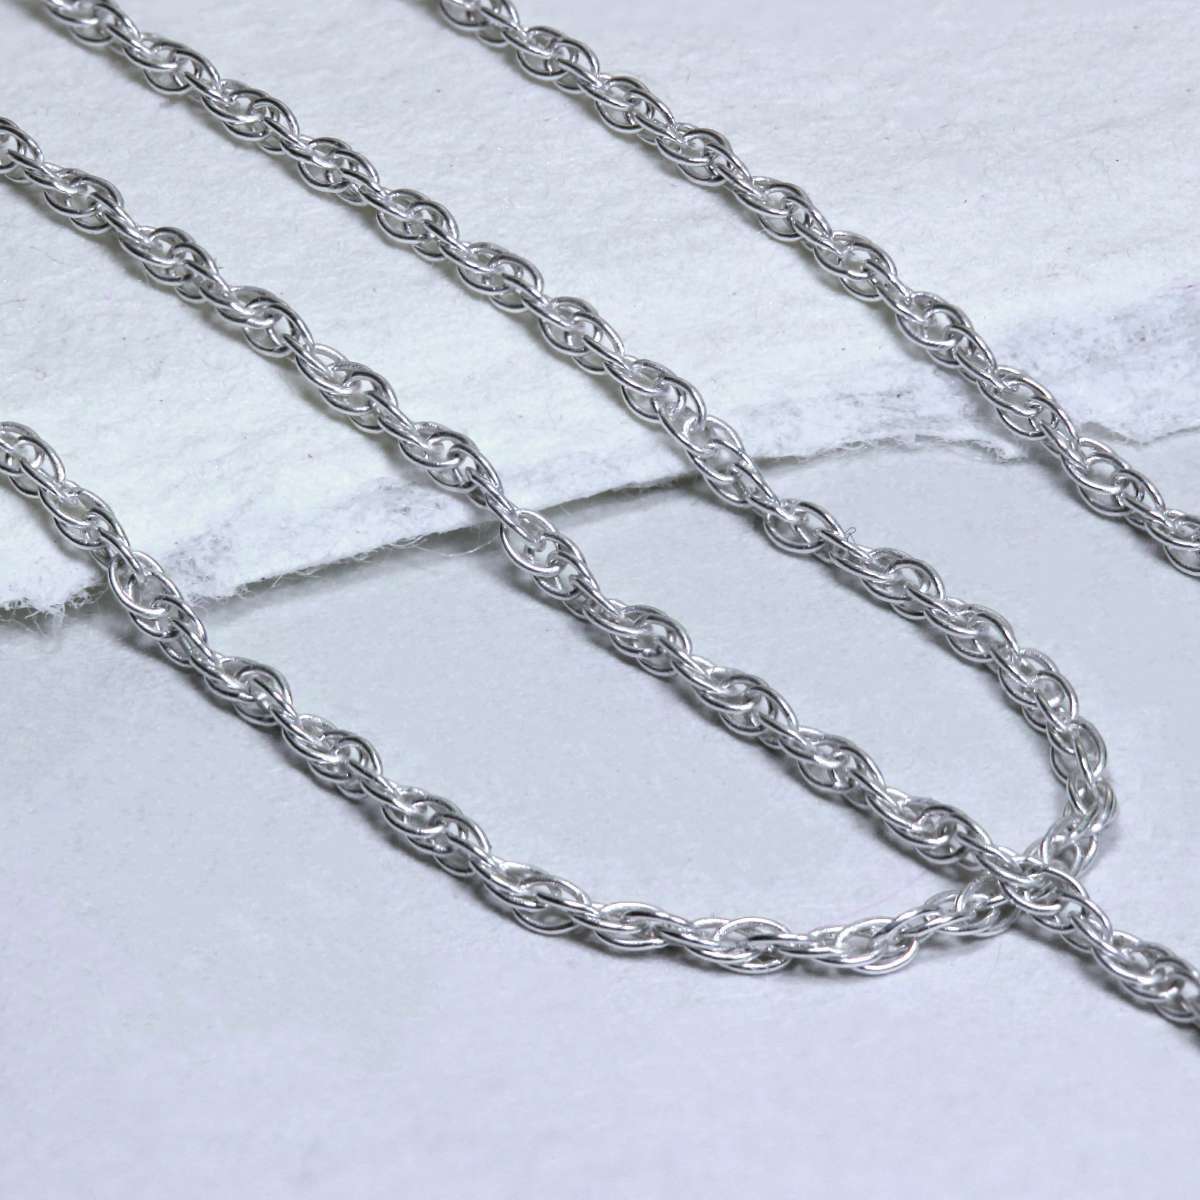 Alterative image for Fine Sterling Silver Prince of Wales Chain Necklace 16 - 22 Inches